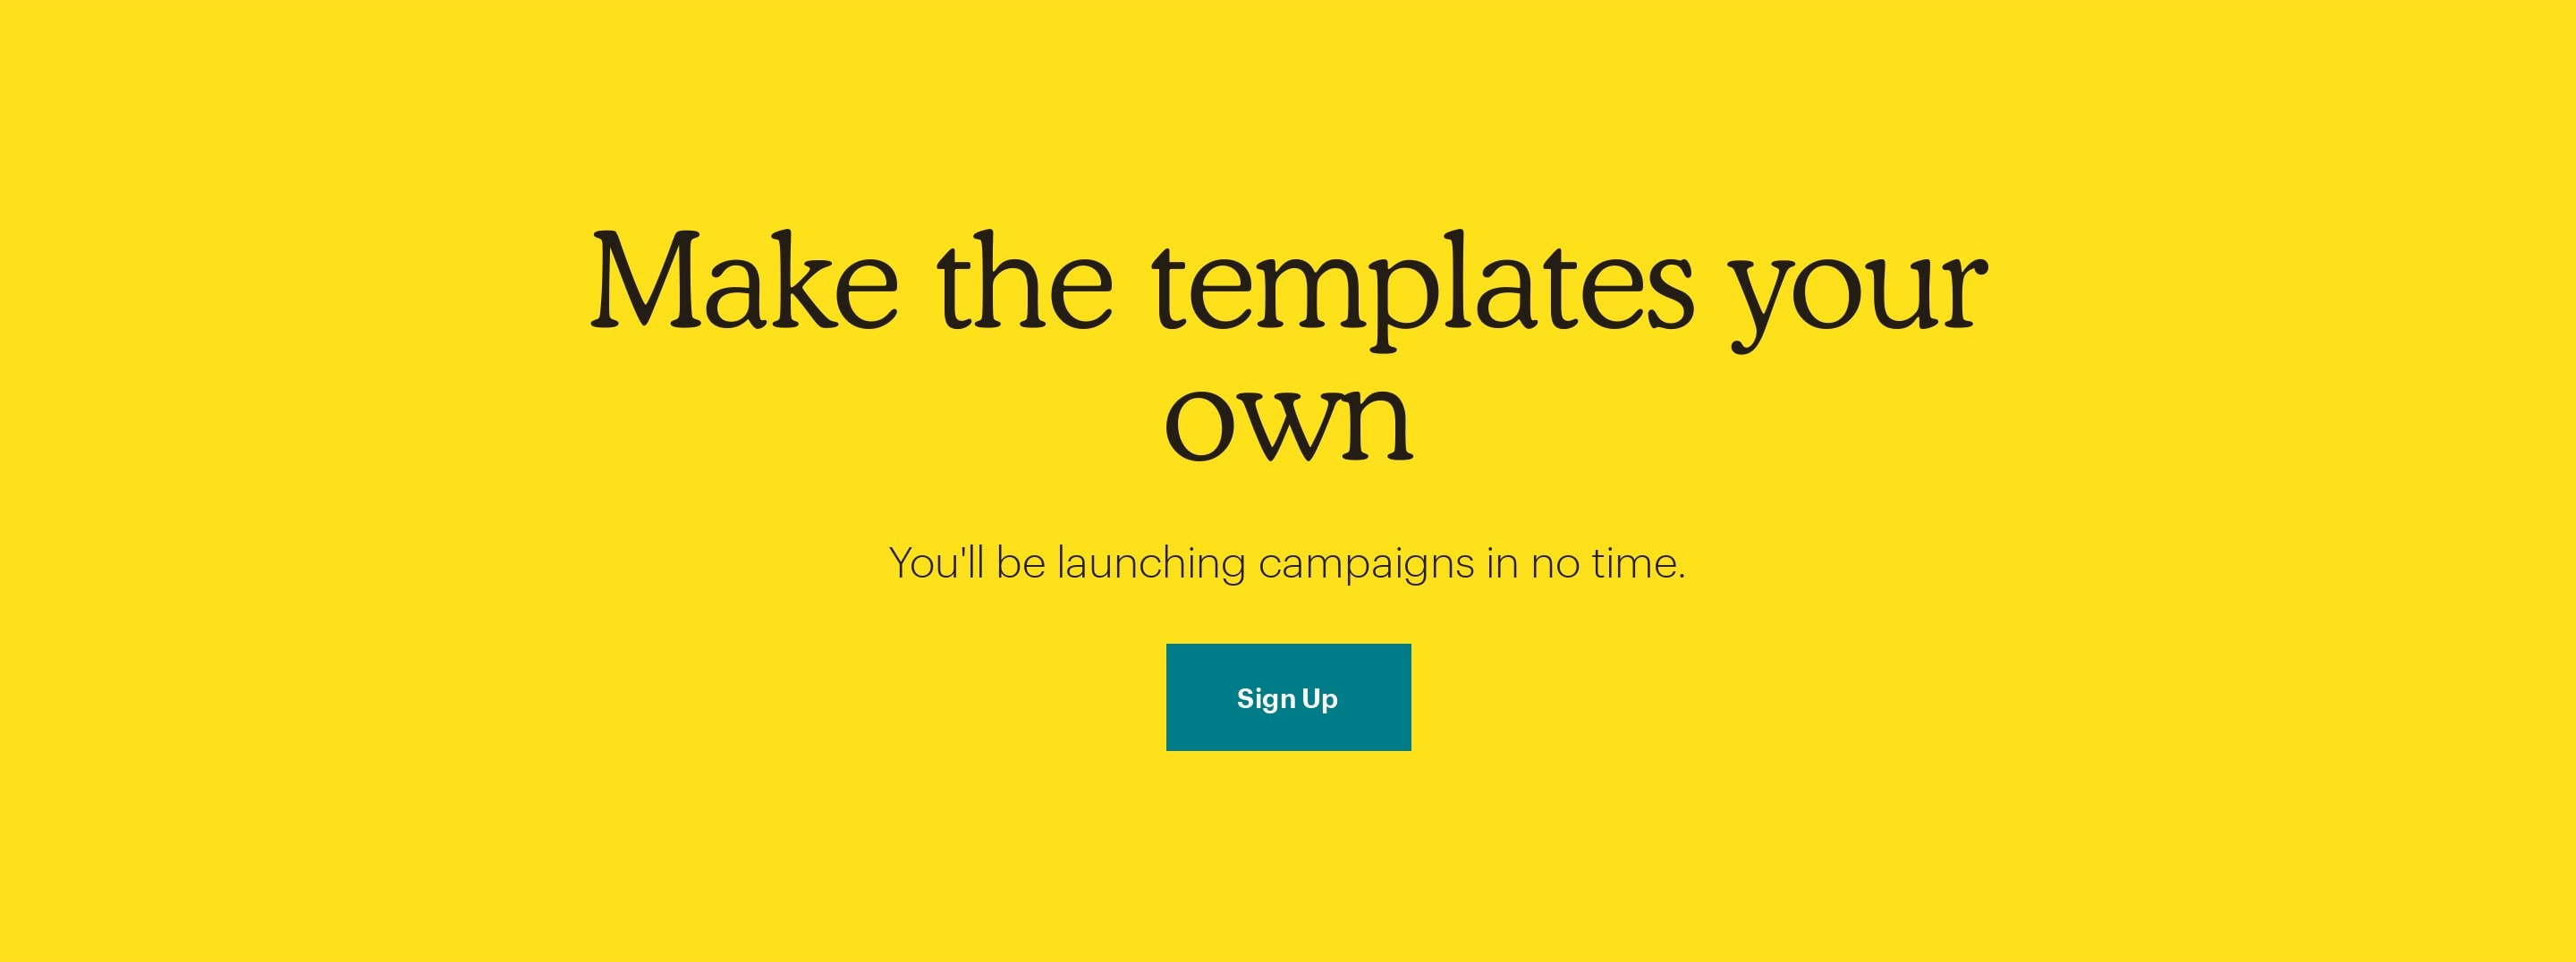 Sign Up CTA Block with Large Tagline